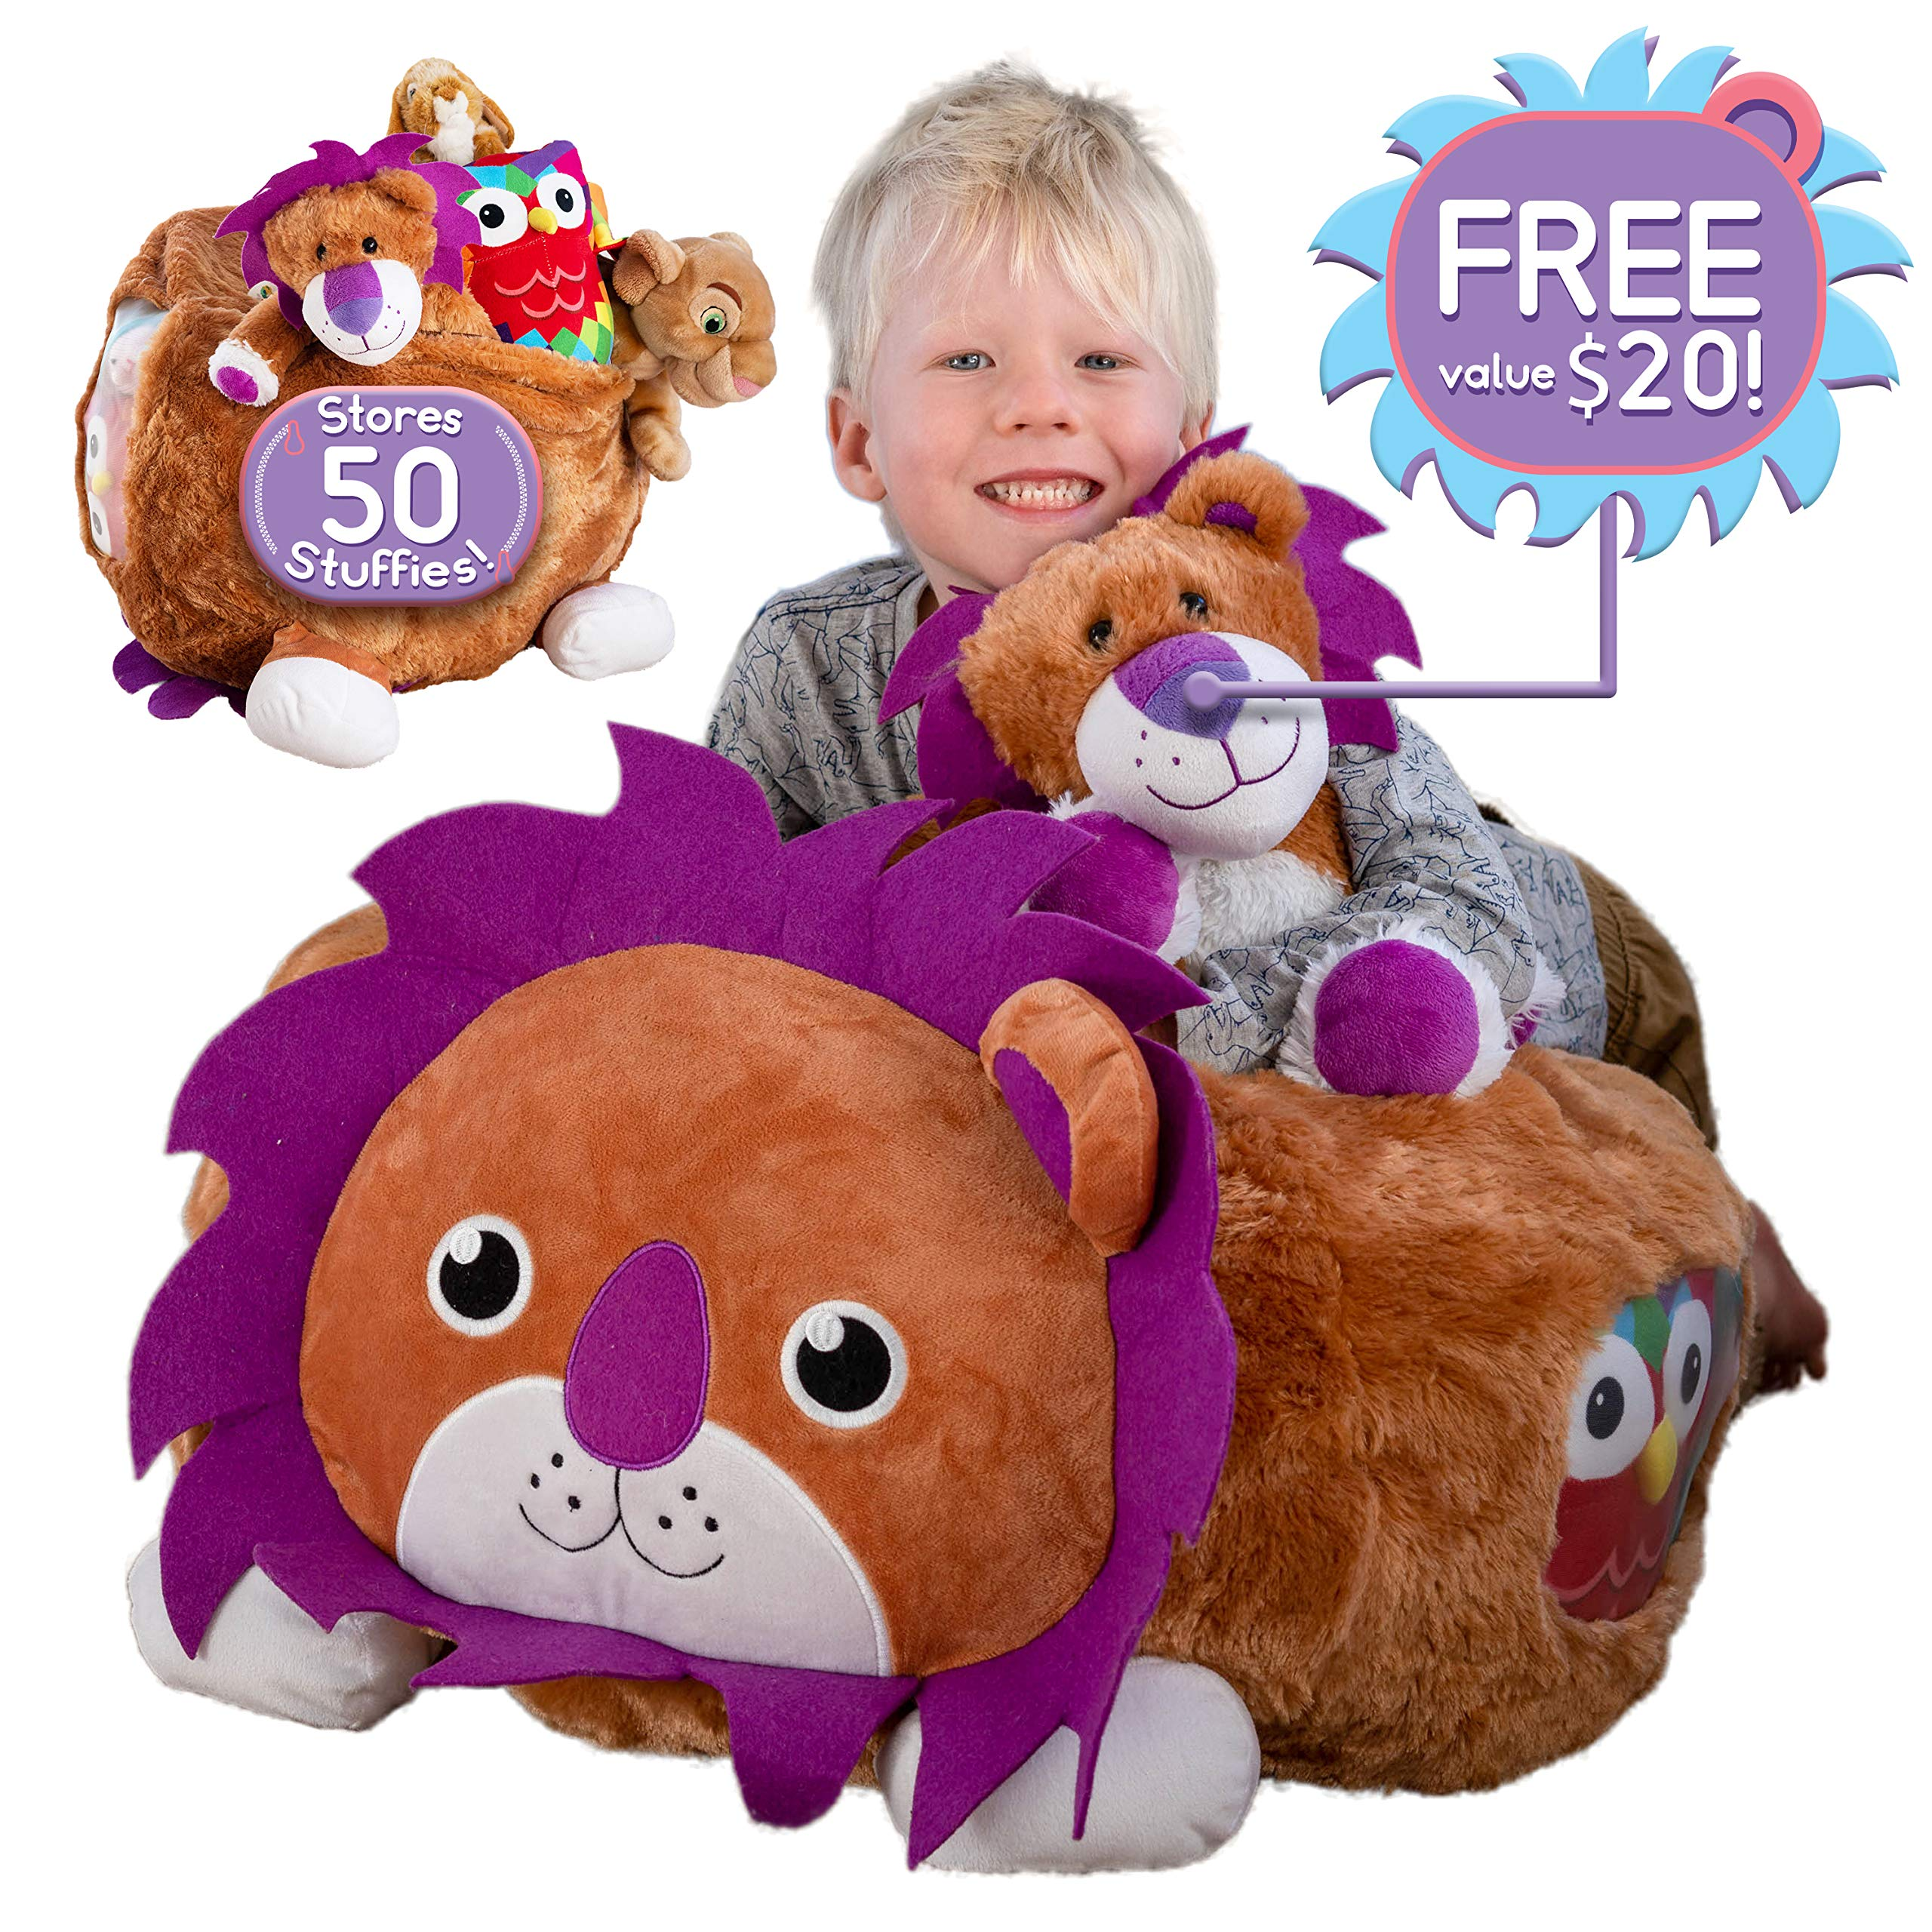 Fur Real Stuffed Animals, Hugable Lion Bean Bag Stuffed Animal Sto Buy Online In Canada At Desertcart